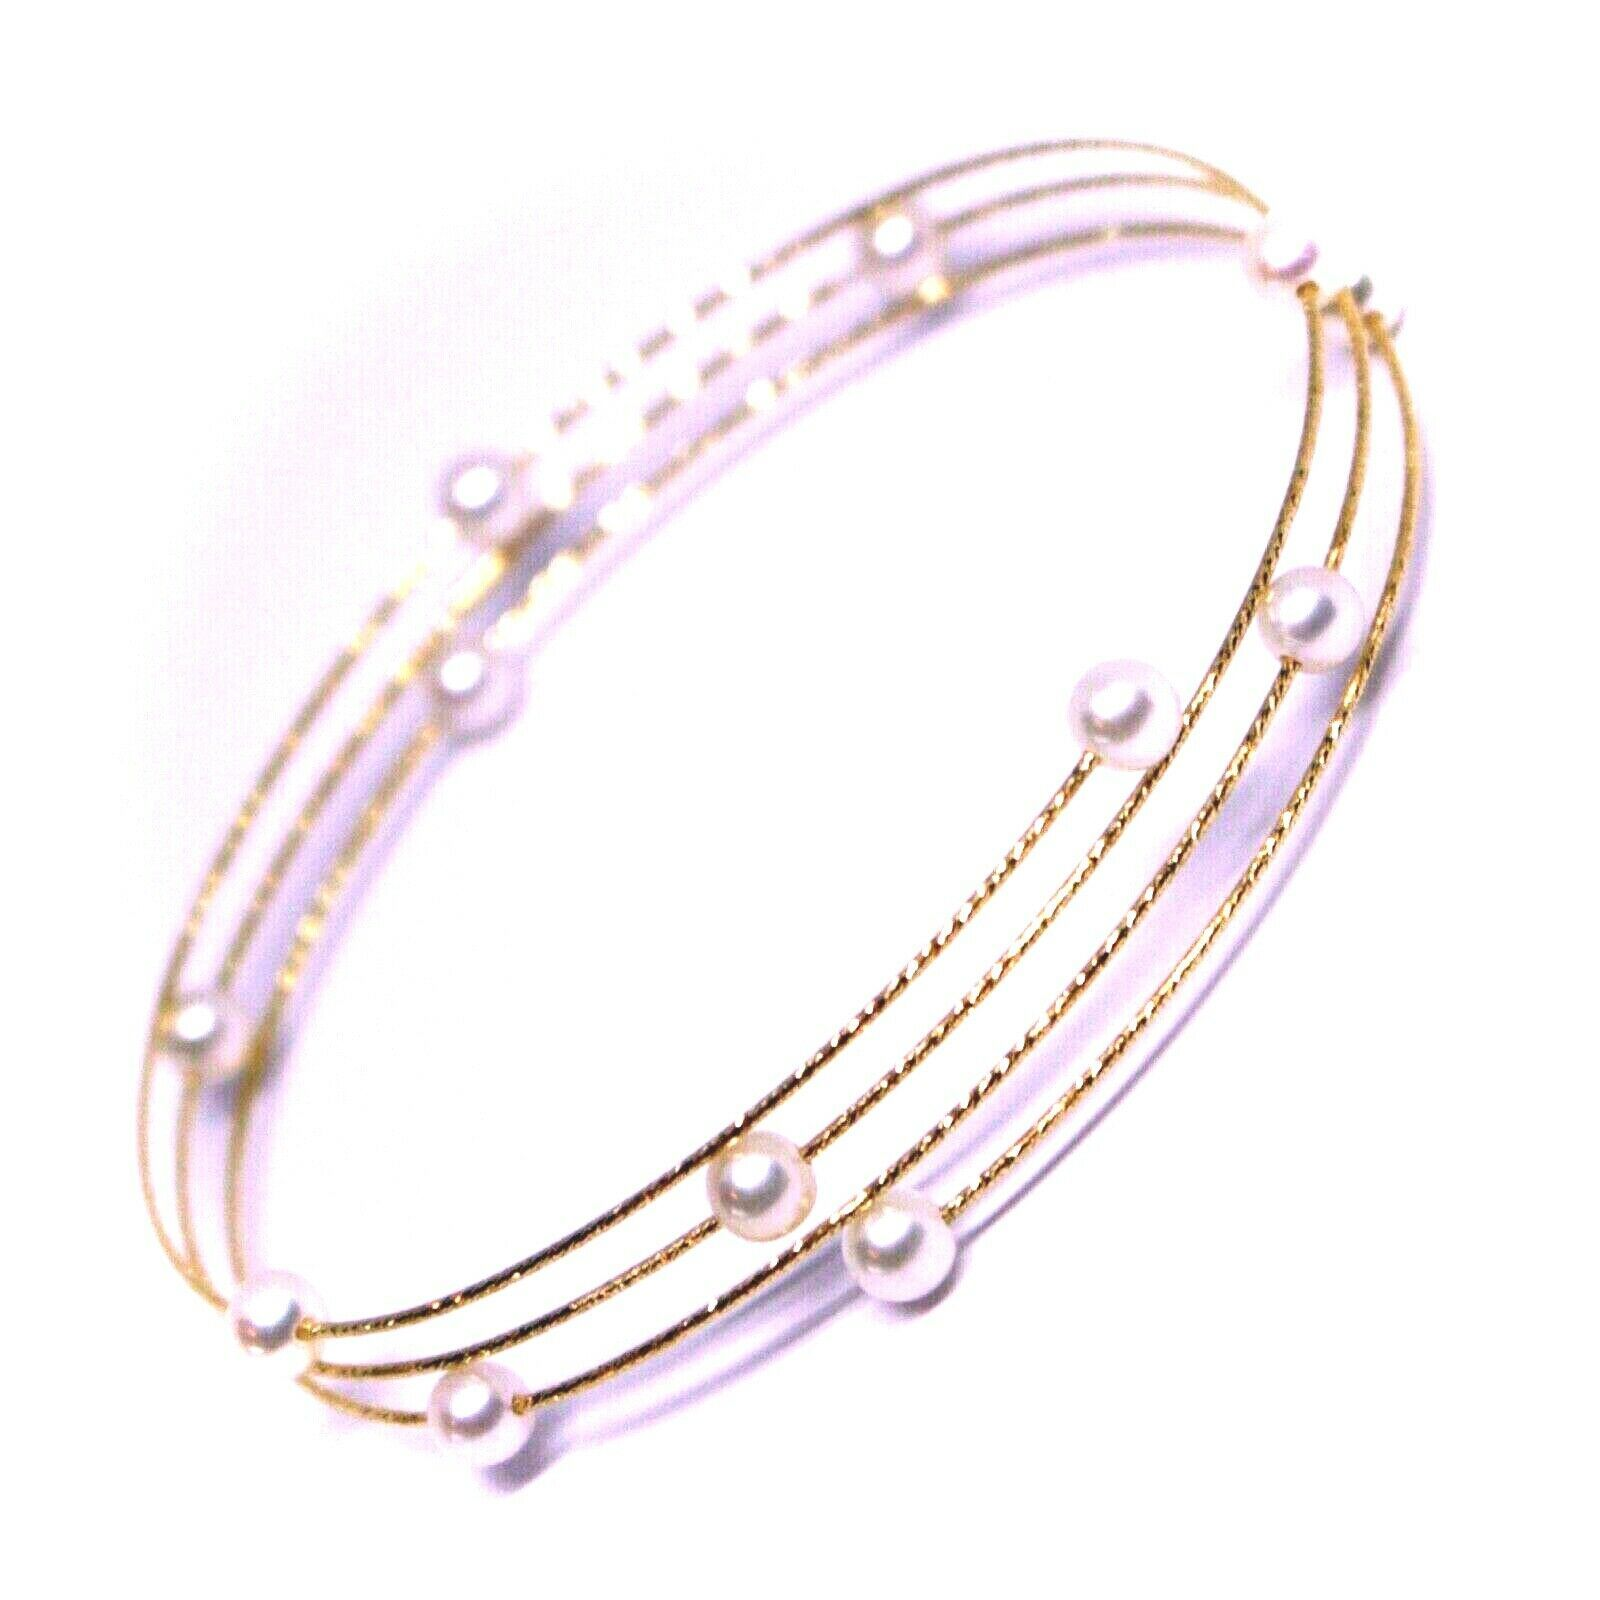 18K ROSE GOLD MAGICWIRE BANGLE BRACELET, ELASTIC WORKED MULTI WIRES PINK PEARLS